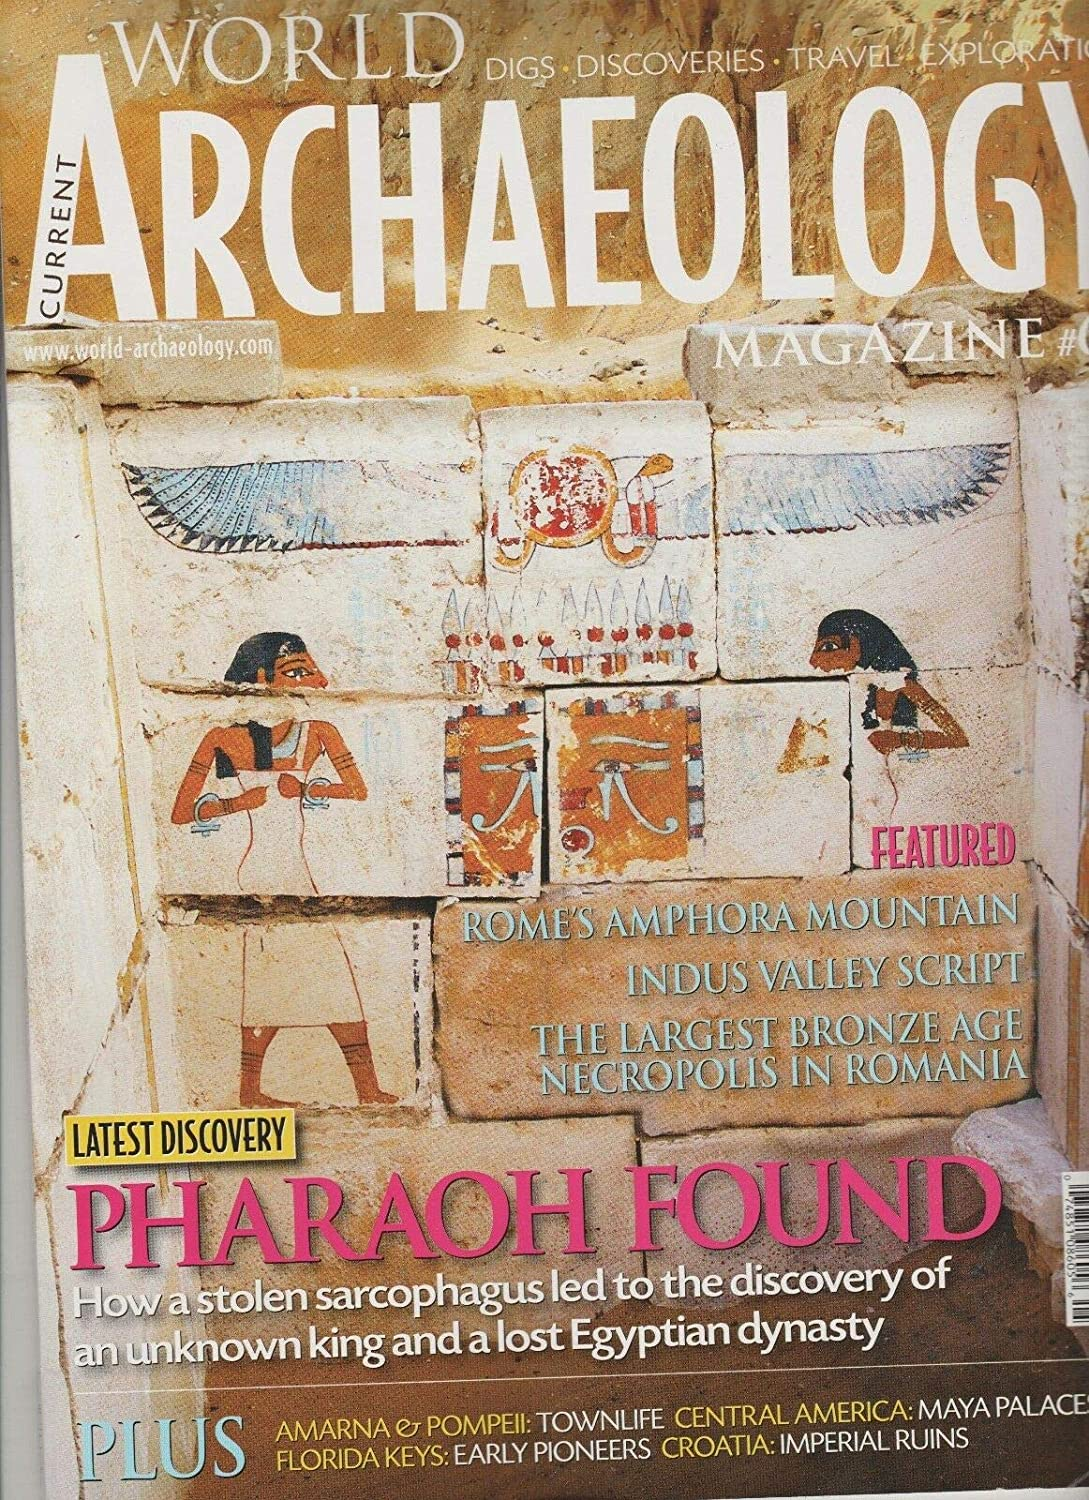 CURRENT WORLD ARCHAEOLOGY MAGAZINE #64 APRIL/MAY 2013.